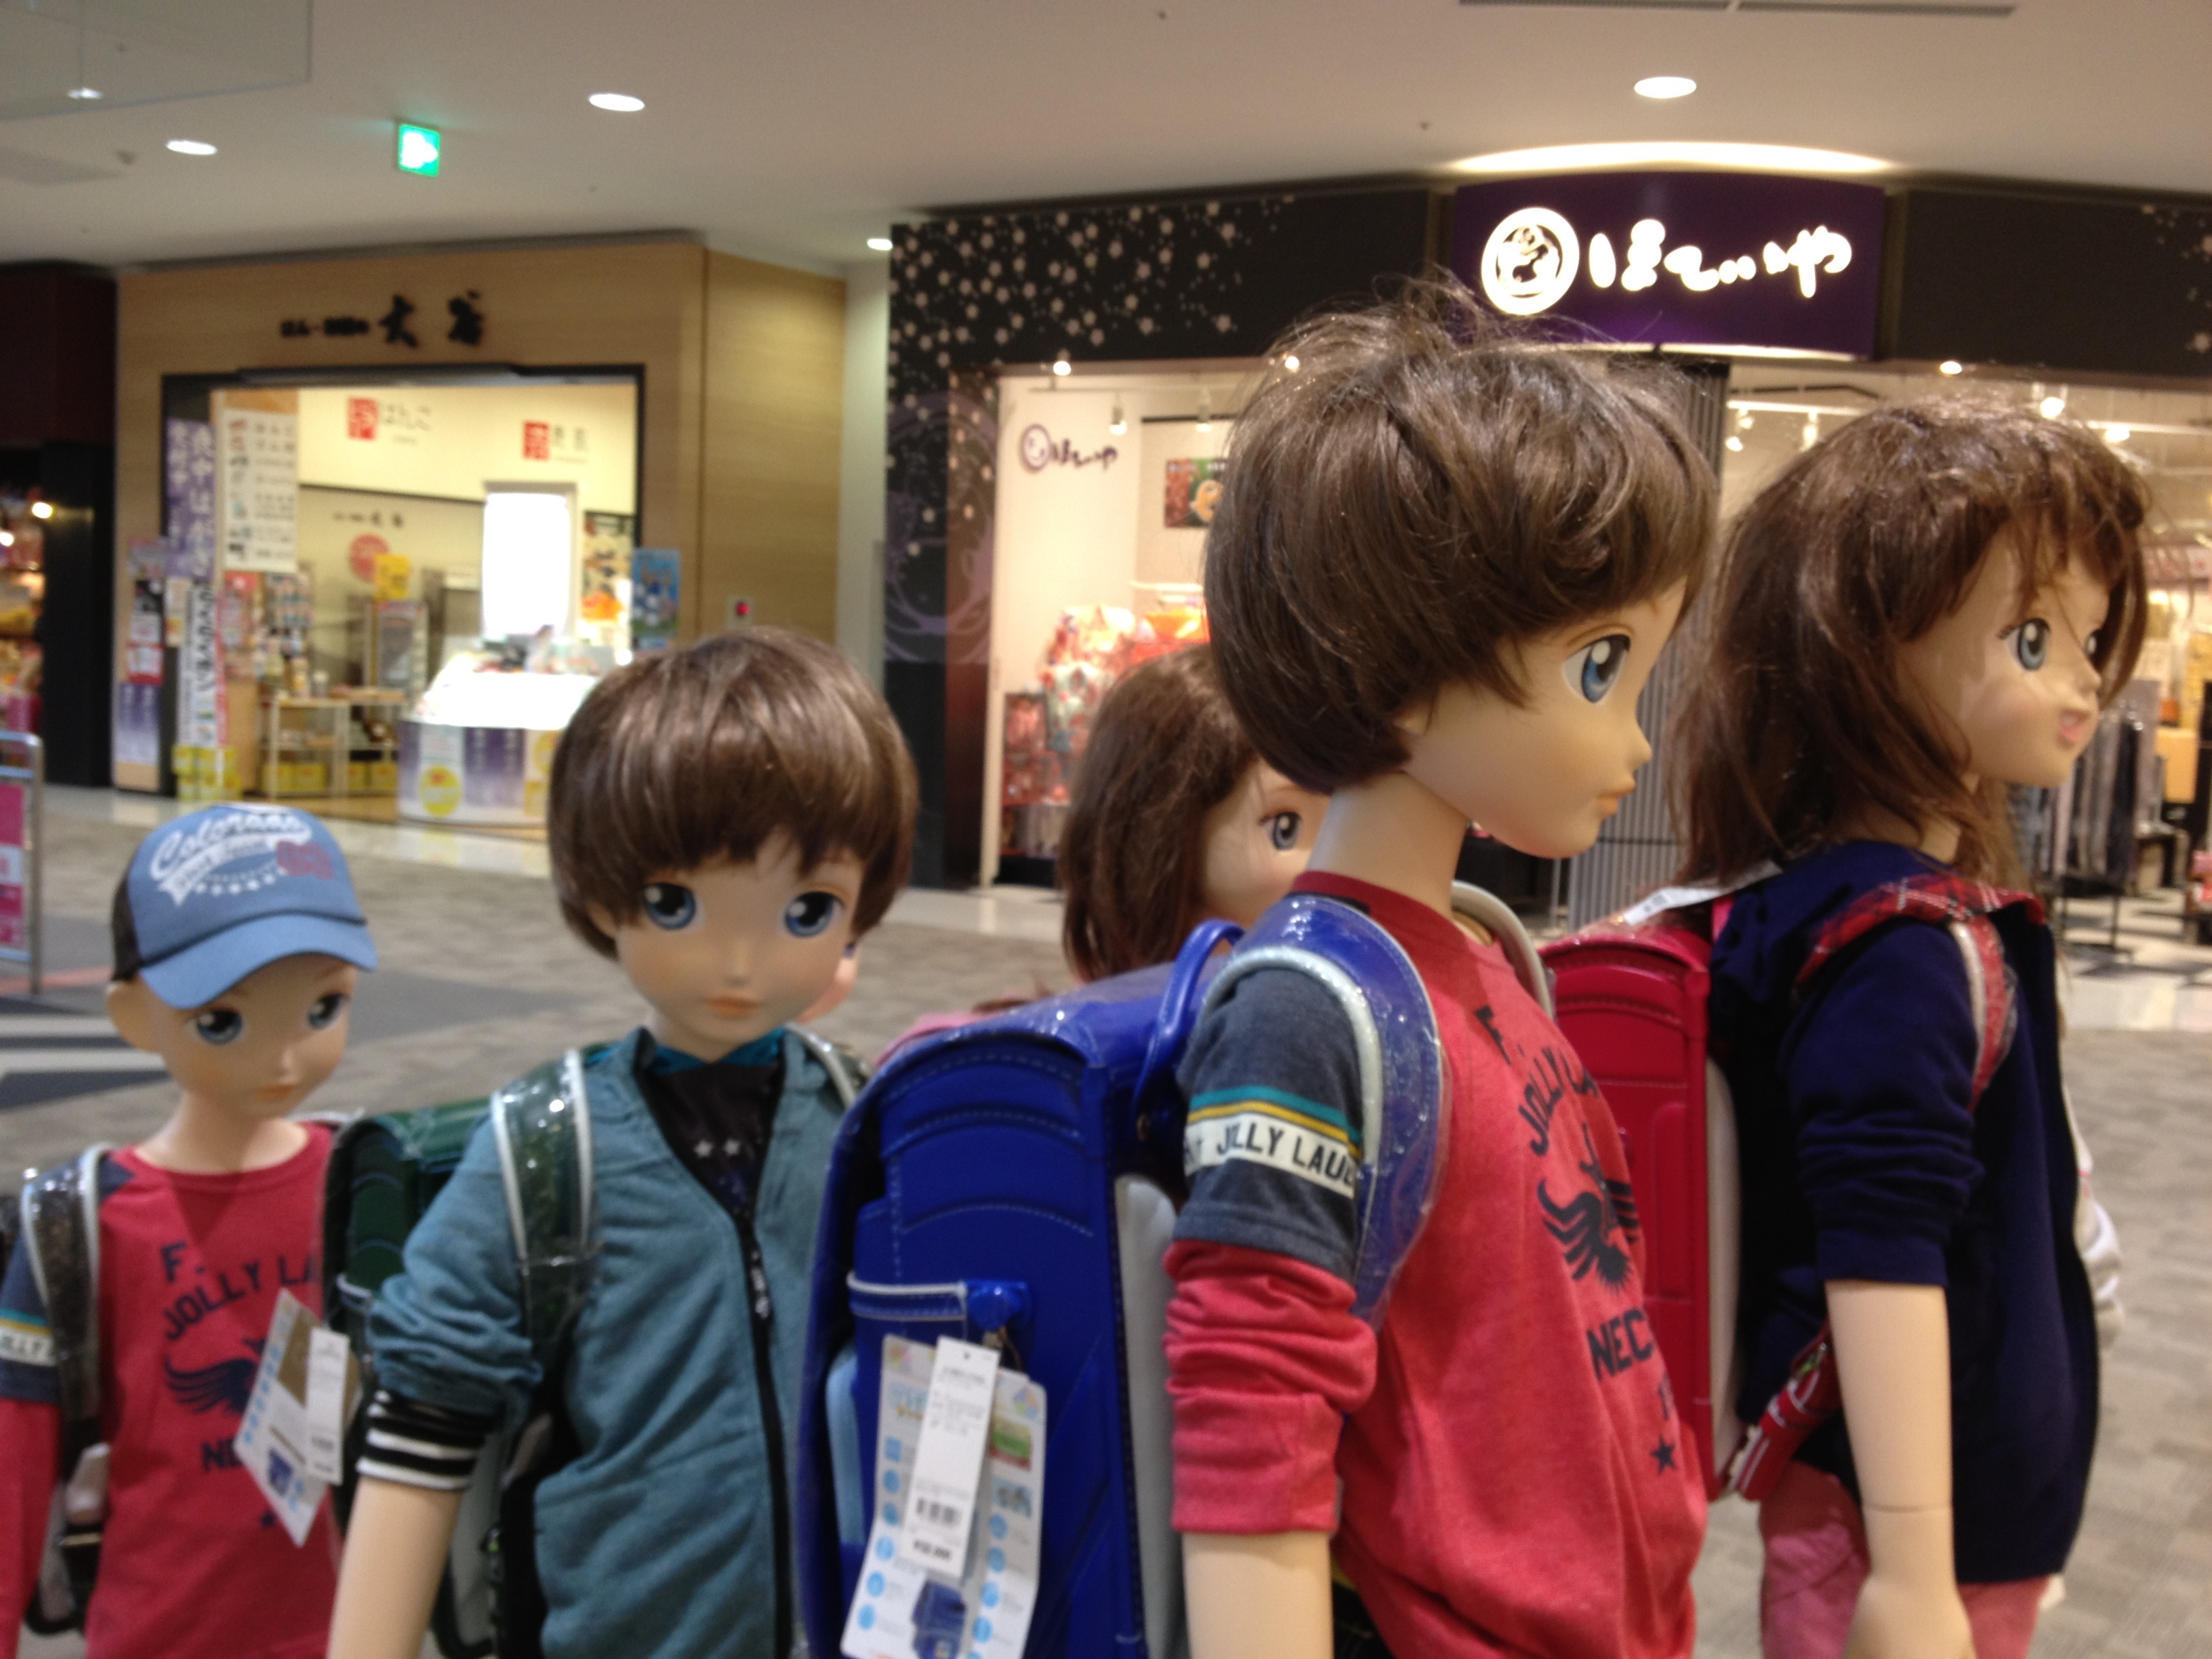 Scary japanese mannequins